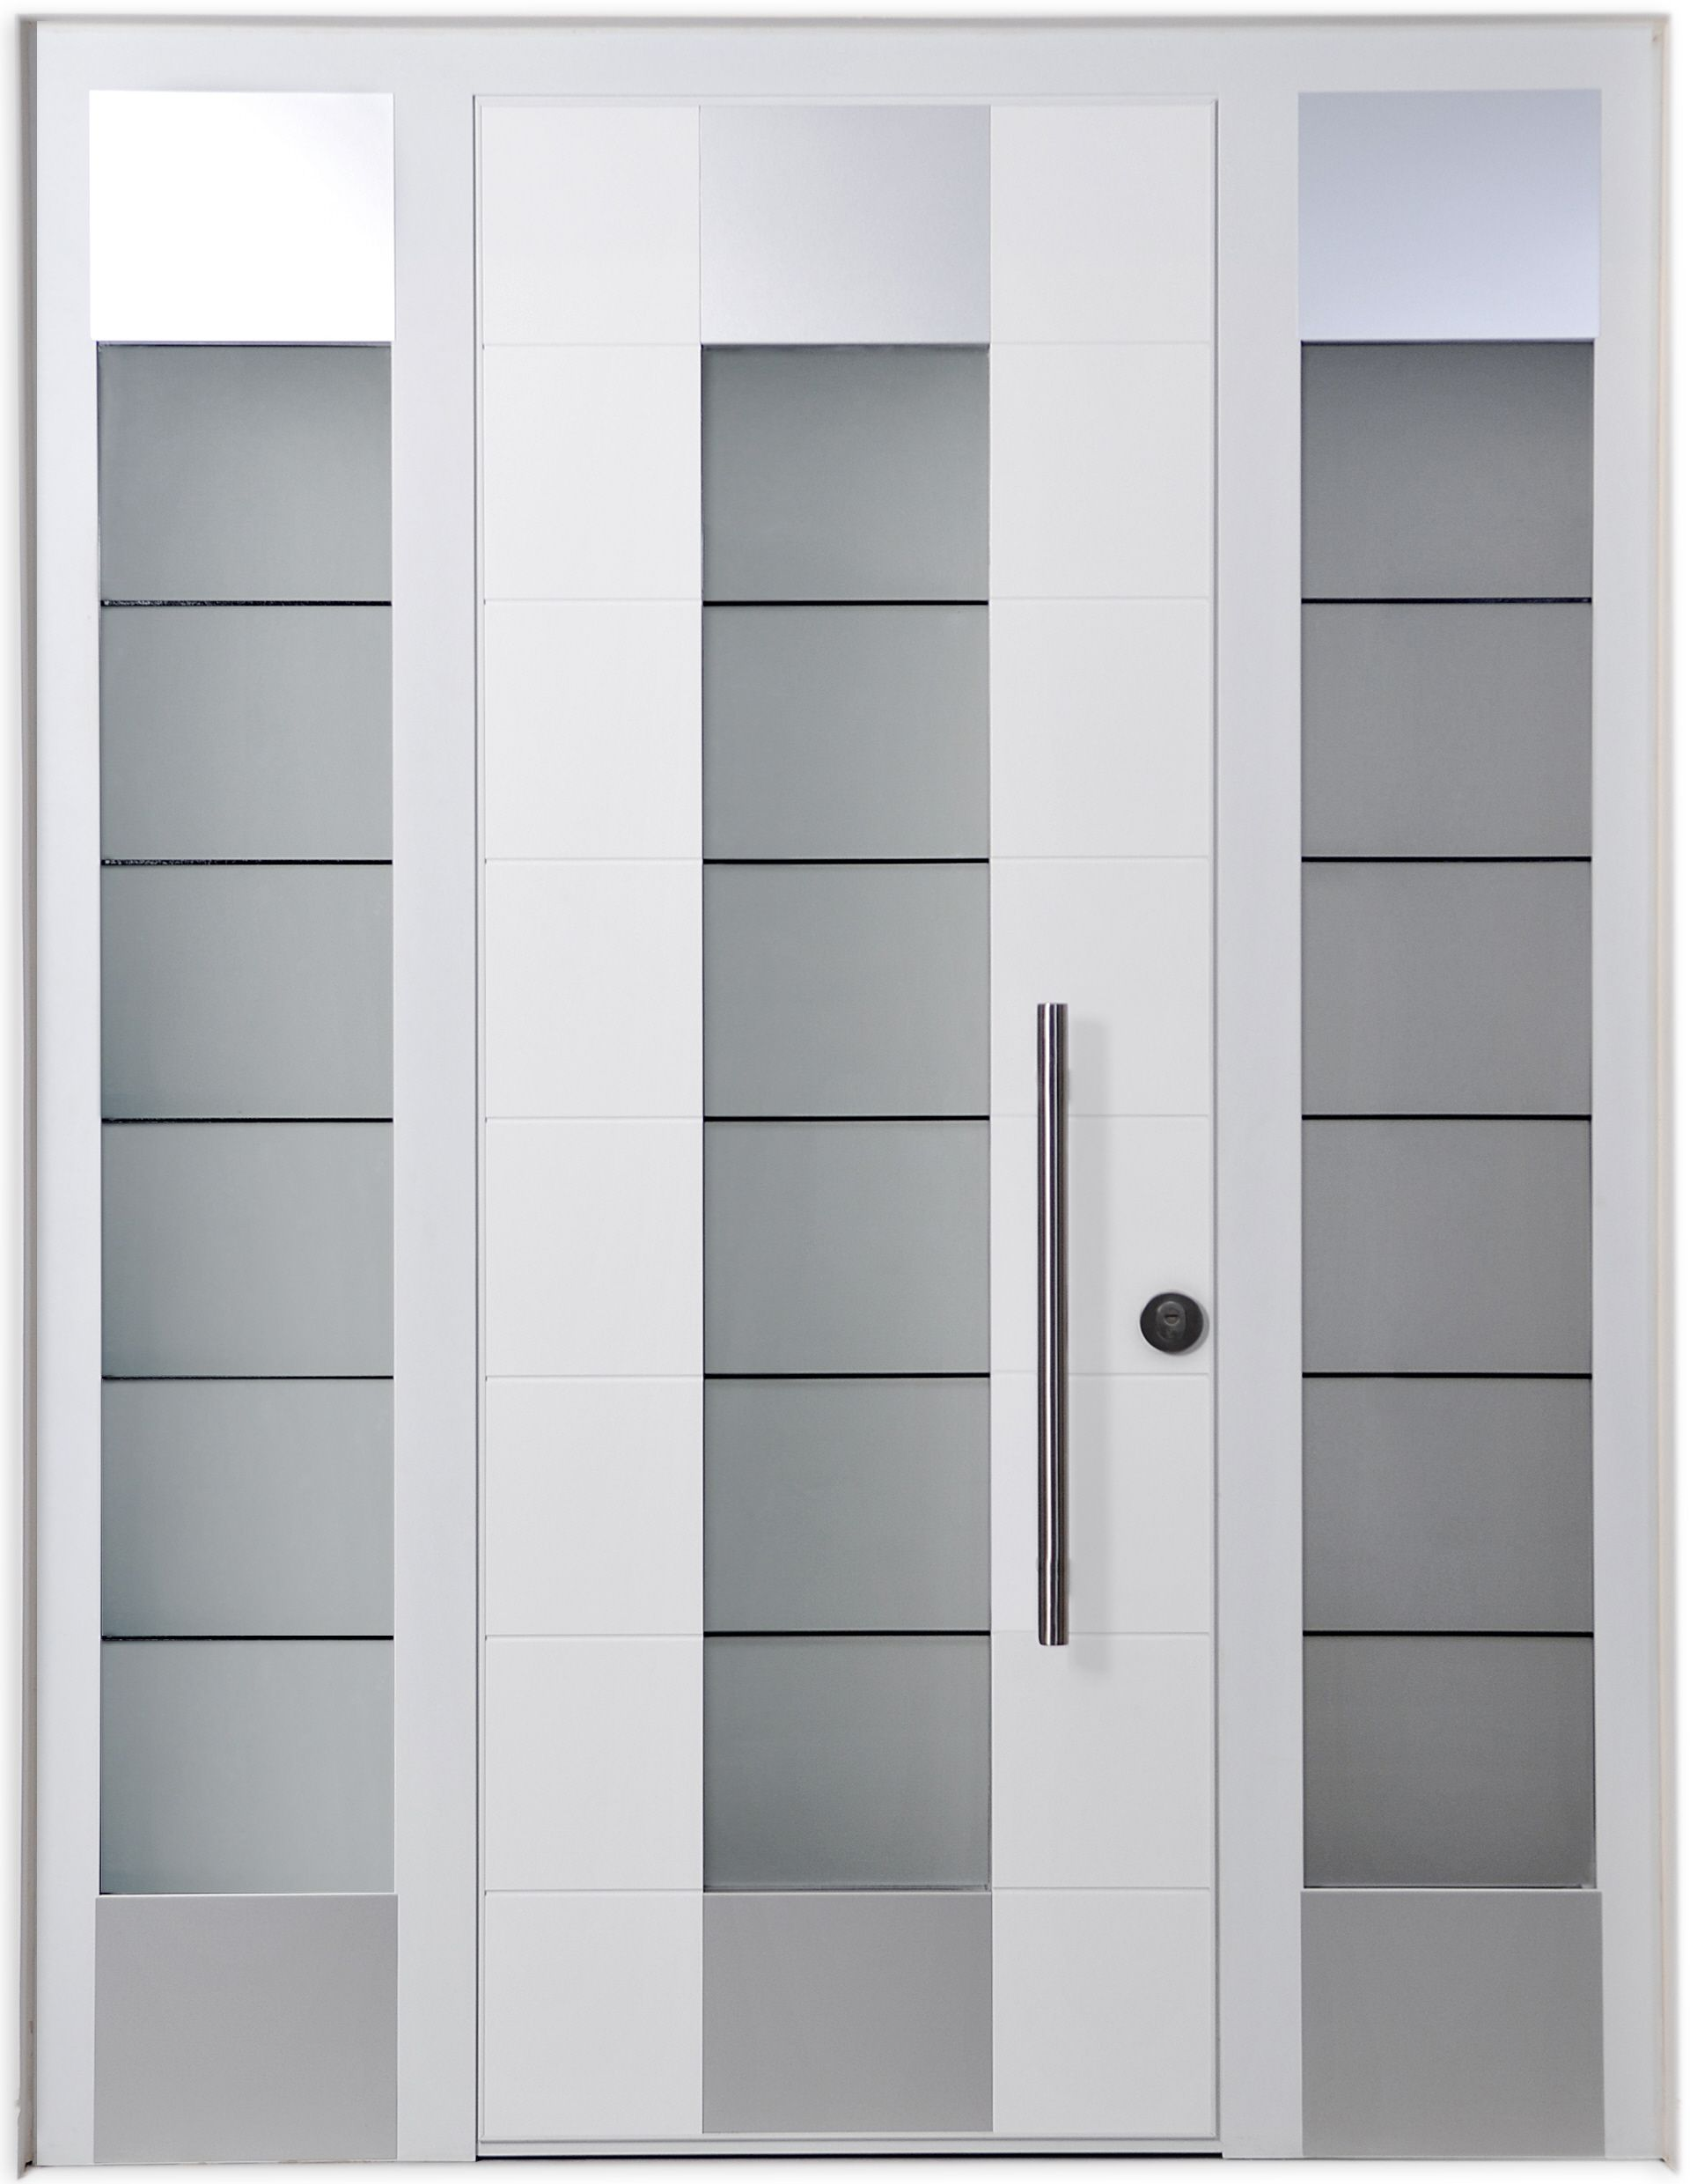 The double glass Manhattan Door is the product of the space  sc 1 st  Pinterest & Clean makes a difference. The double glass Manhattan Door is the ...